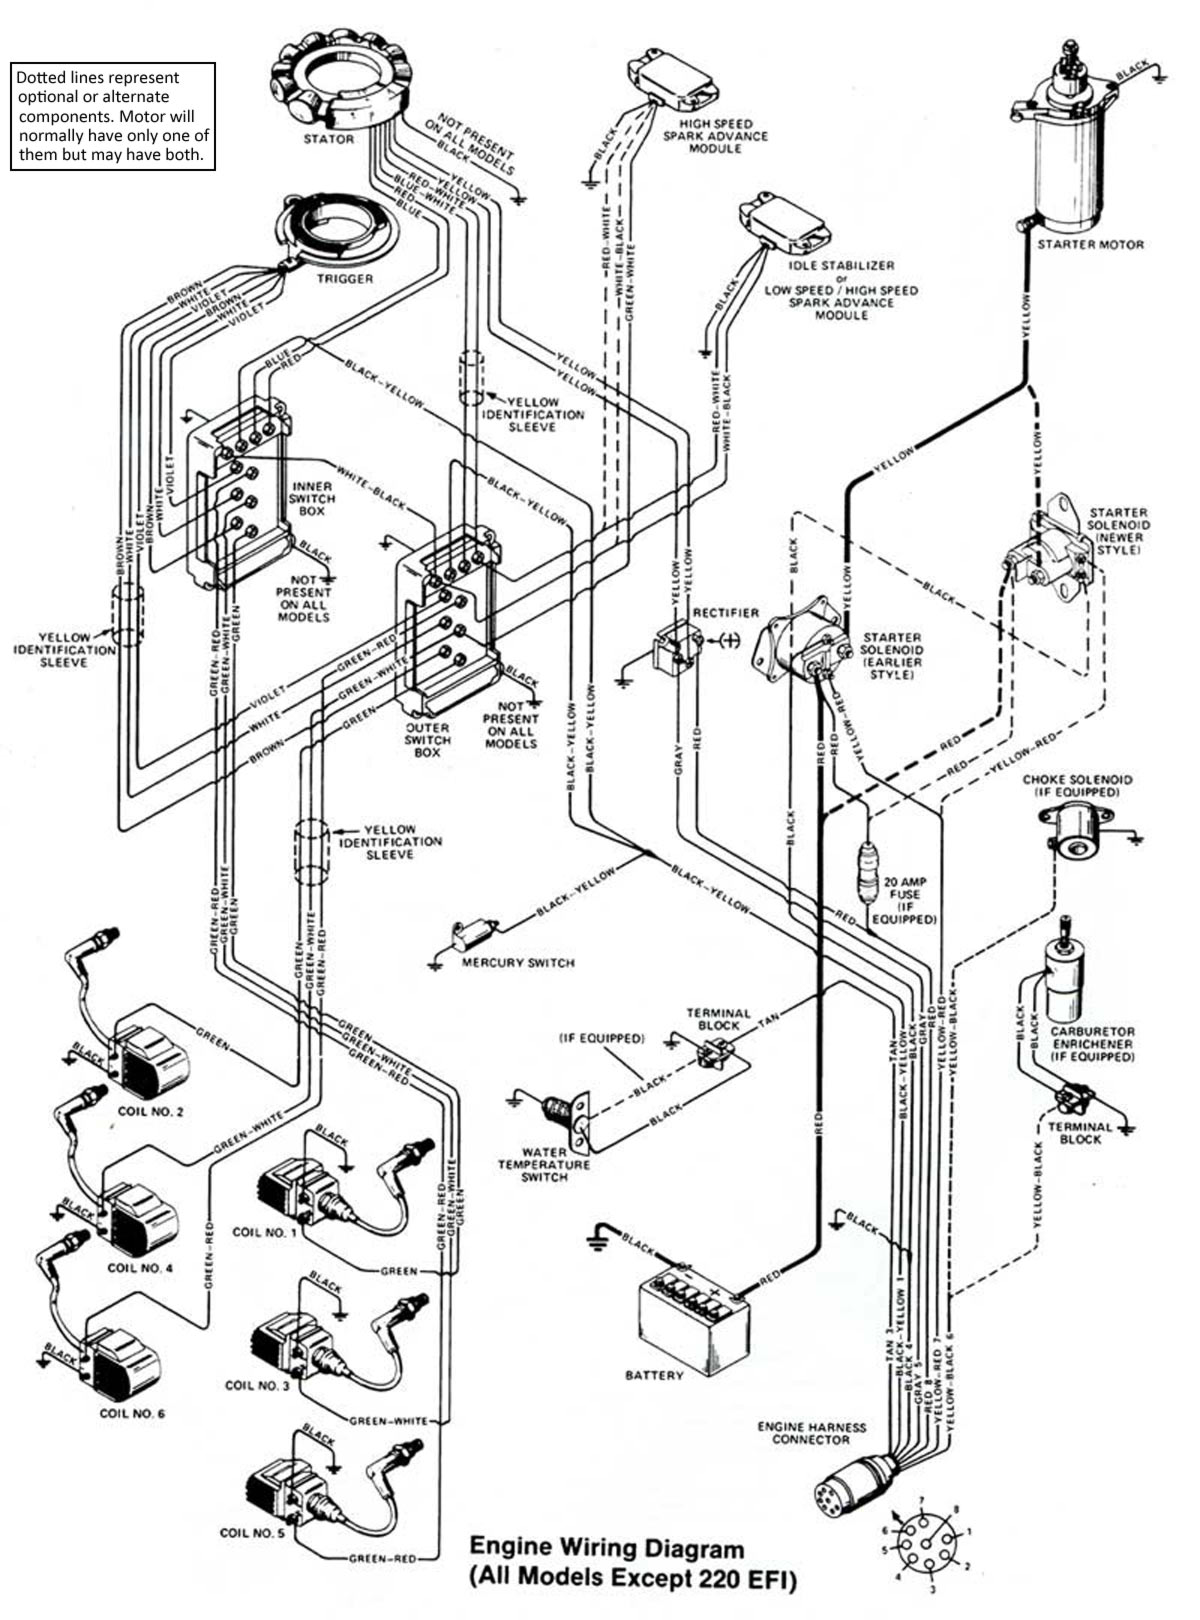 35 hp force outboard wiring diagram  35  get free image